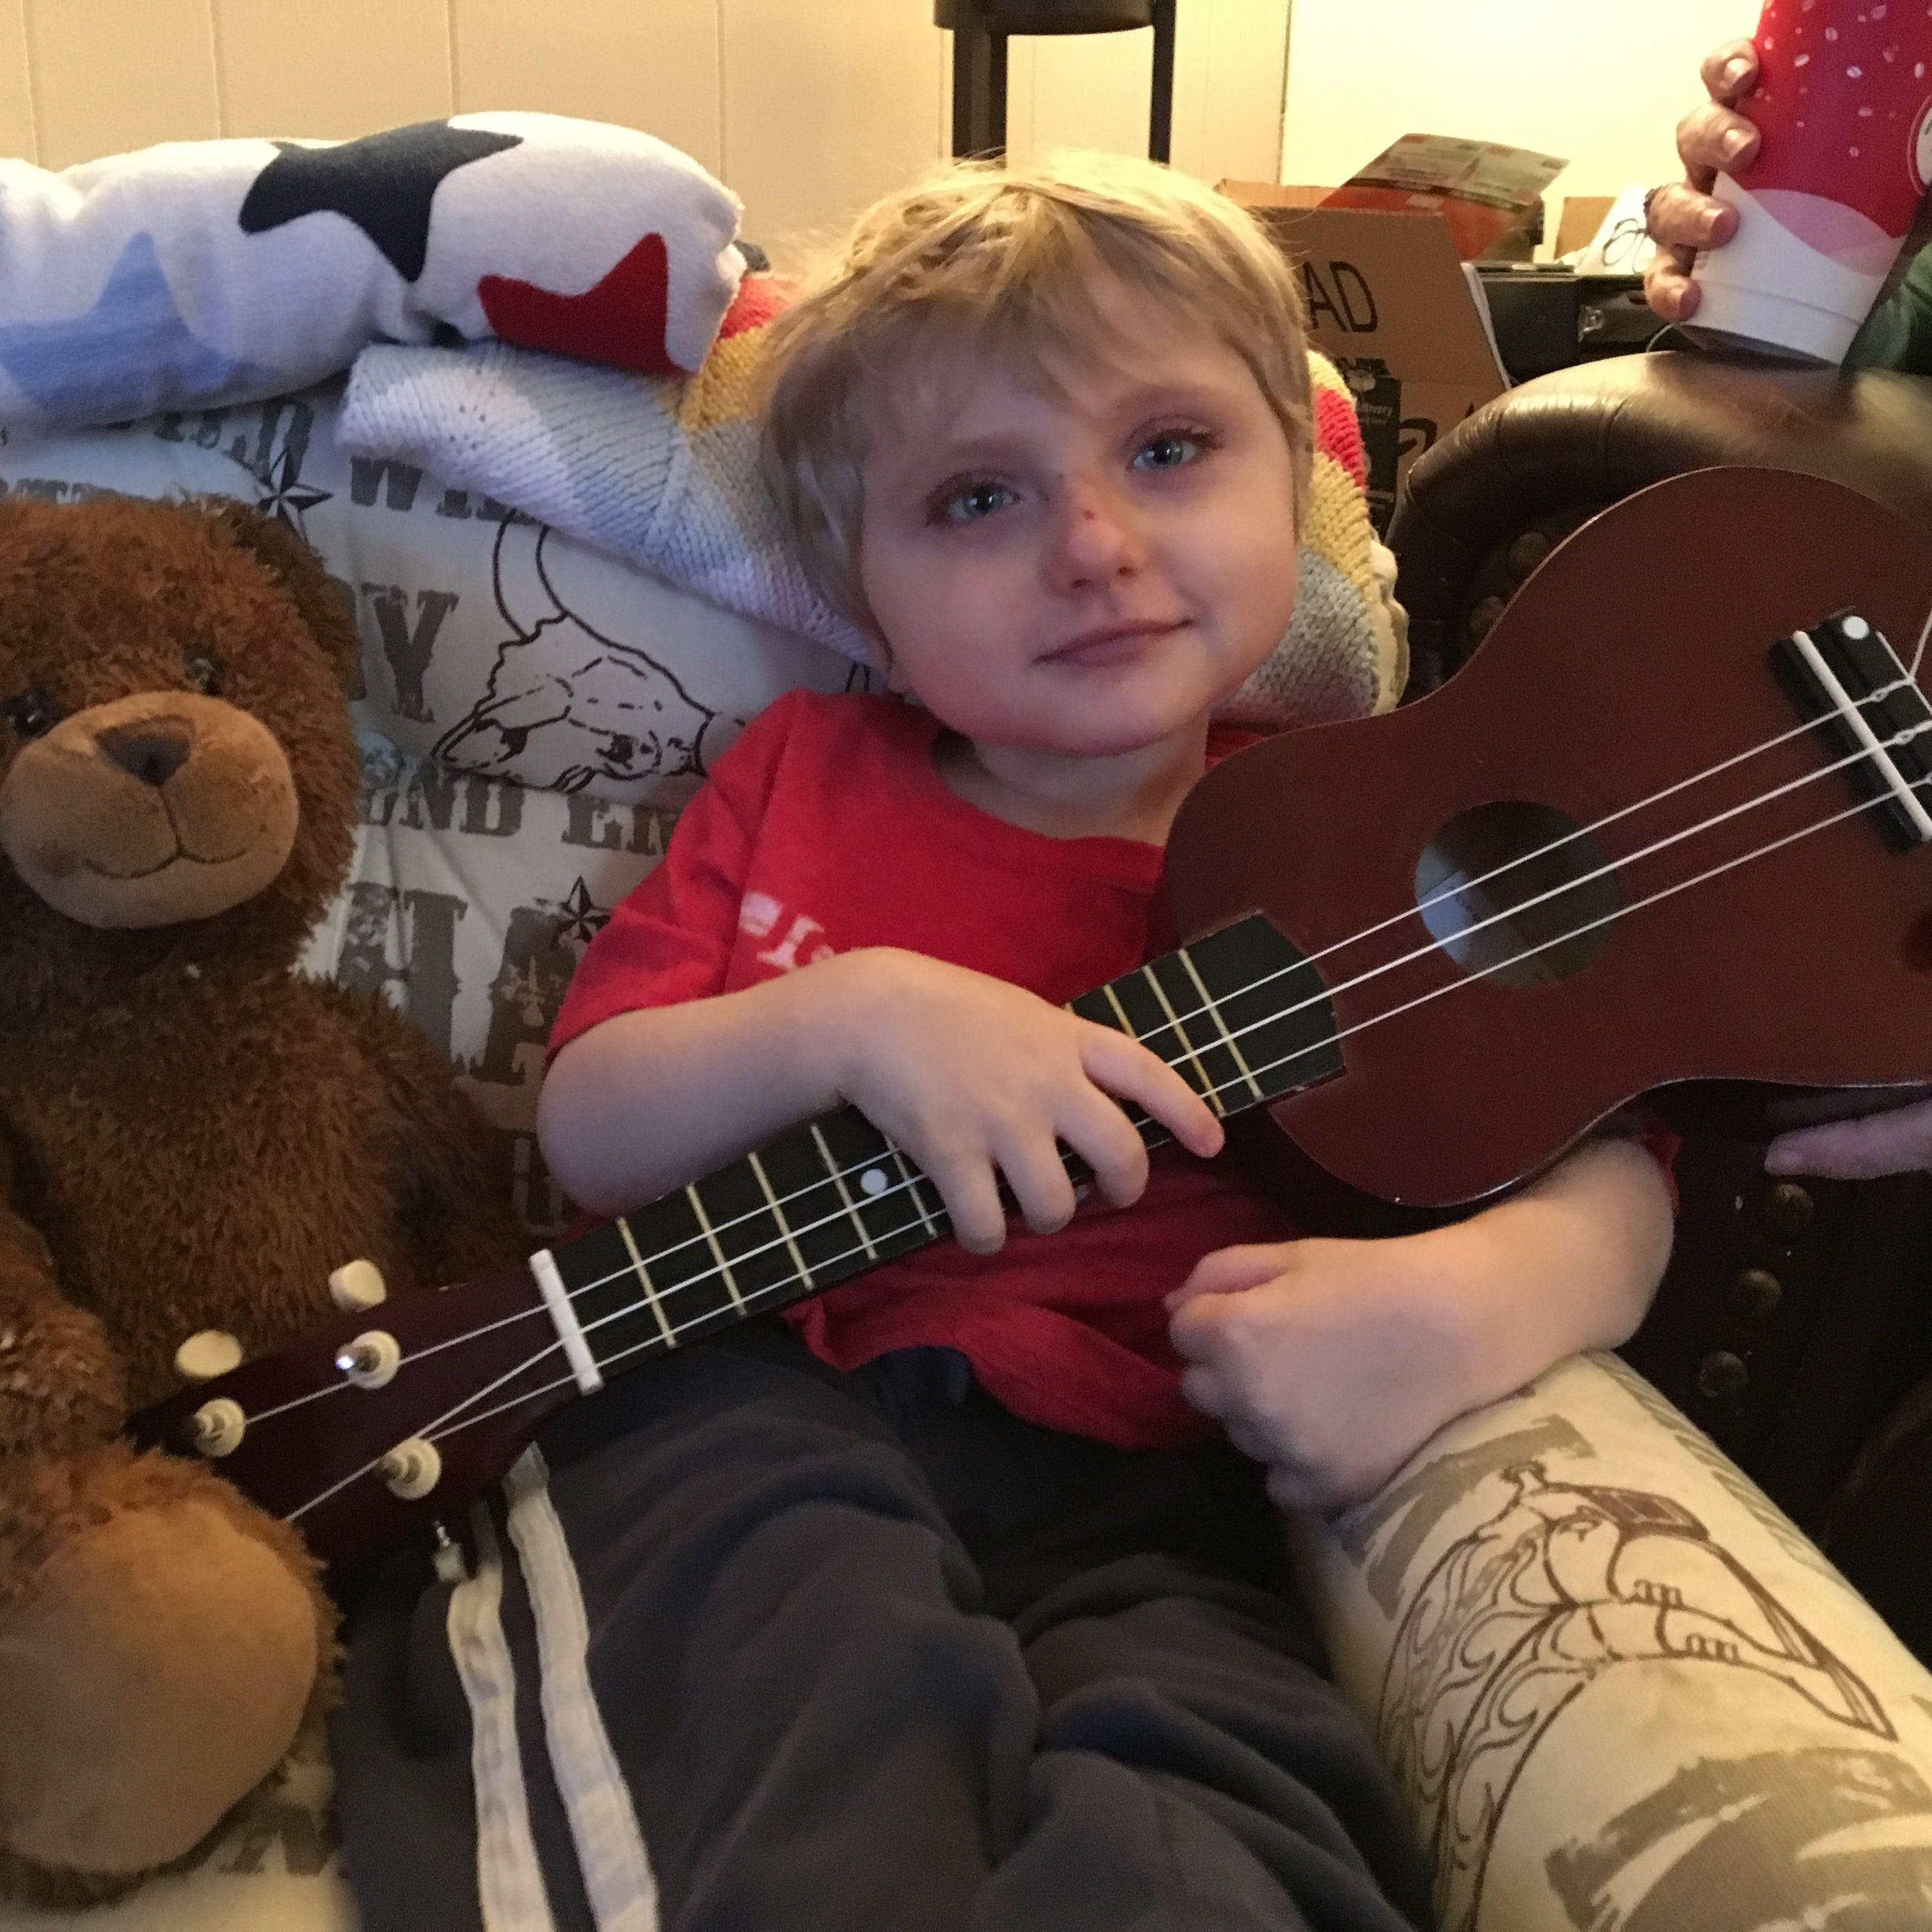 Staunton boy with rare genetic disorder loses portion of home care